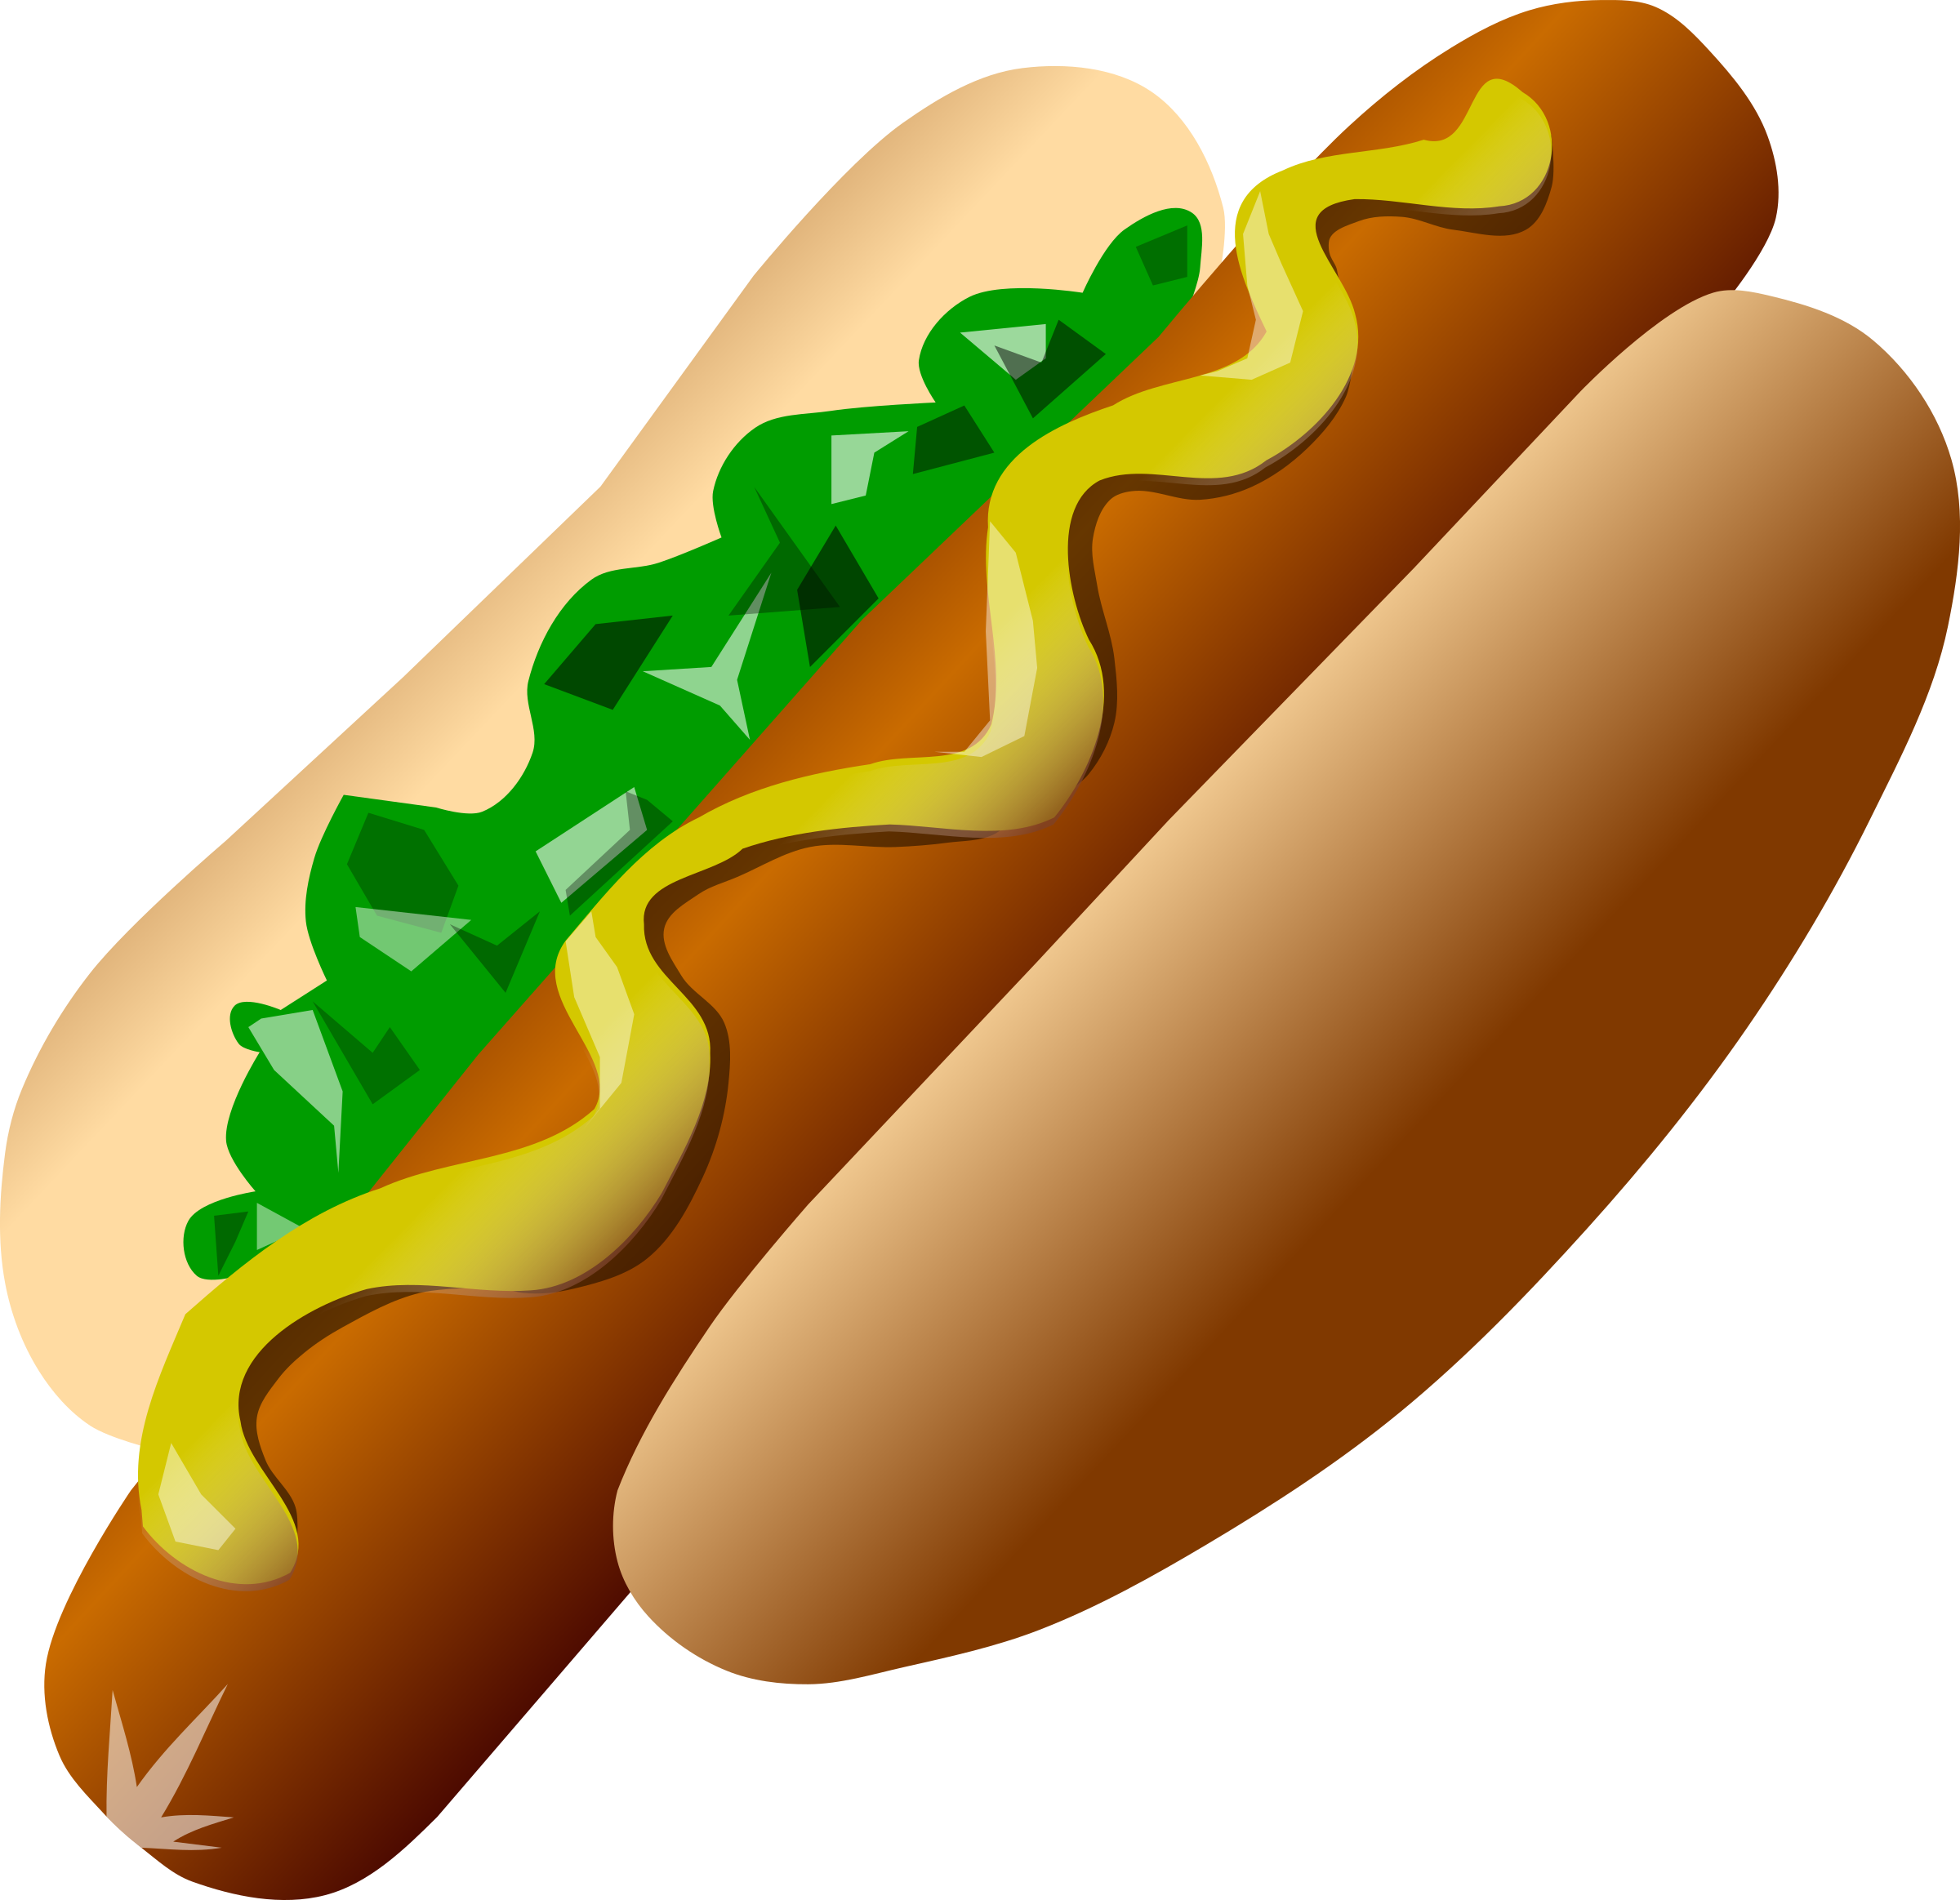 Lunchbox clipart luncheon. Hot dog